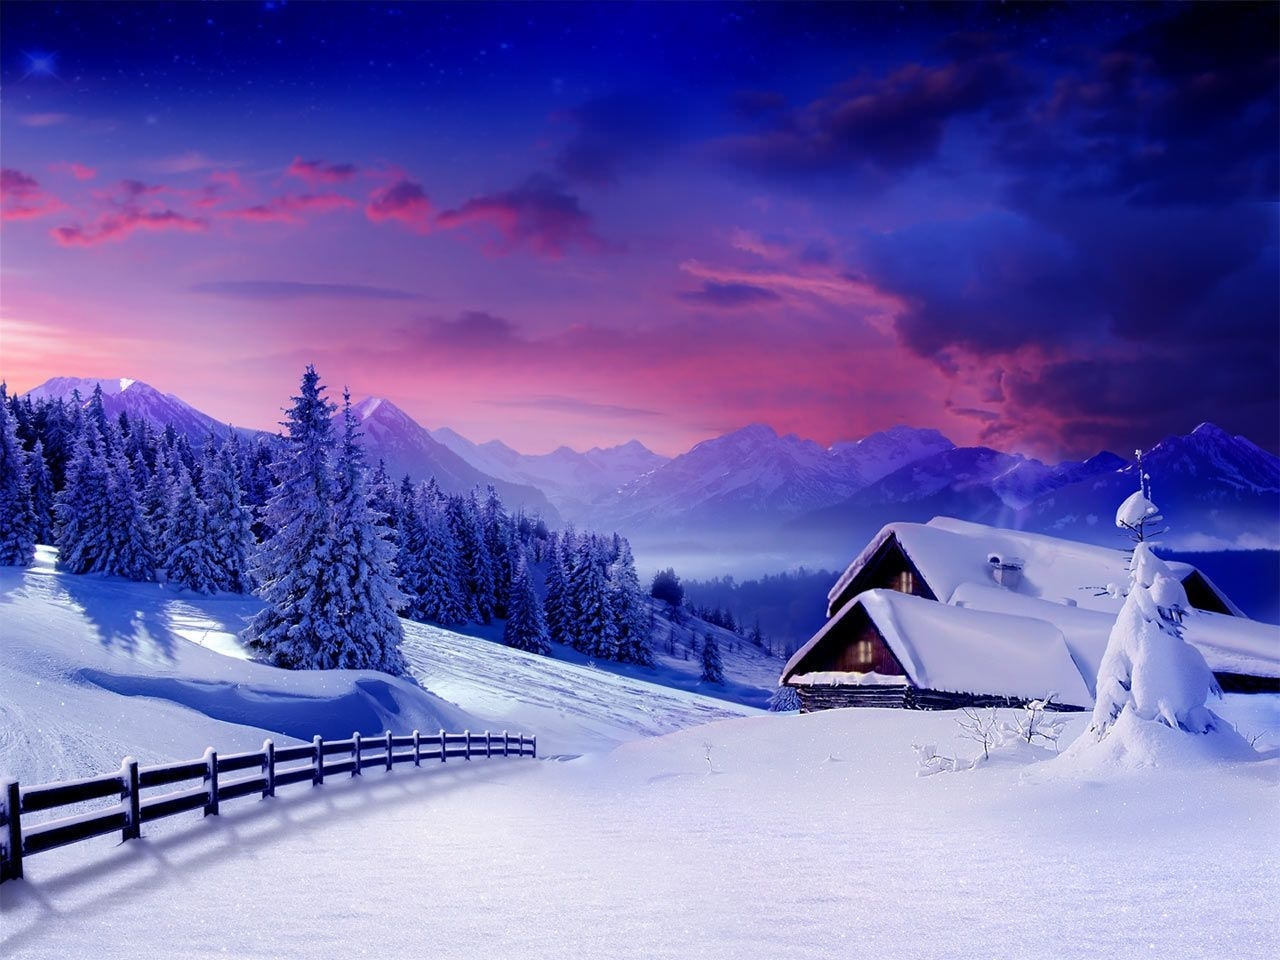 snow wallpapers wide » outdoors wallpaper 1080p